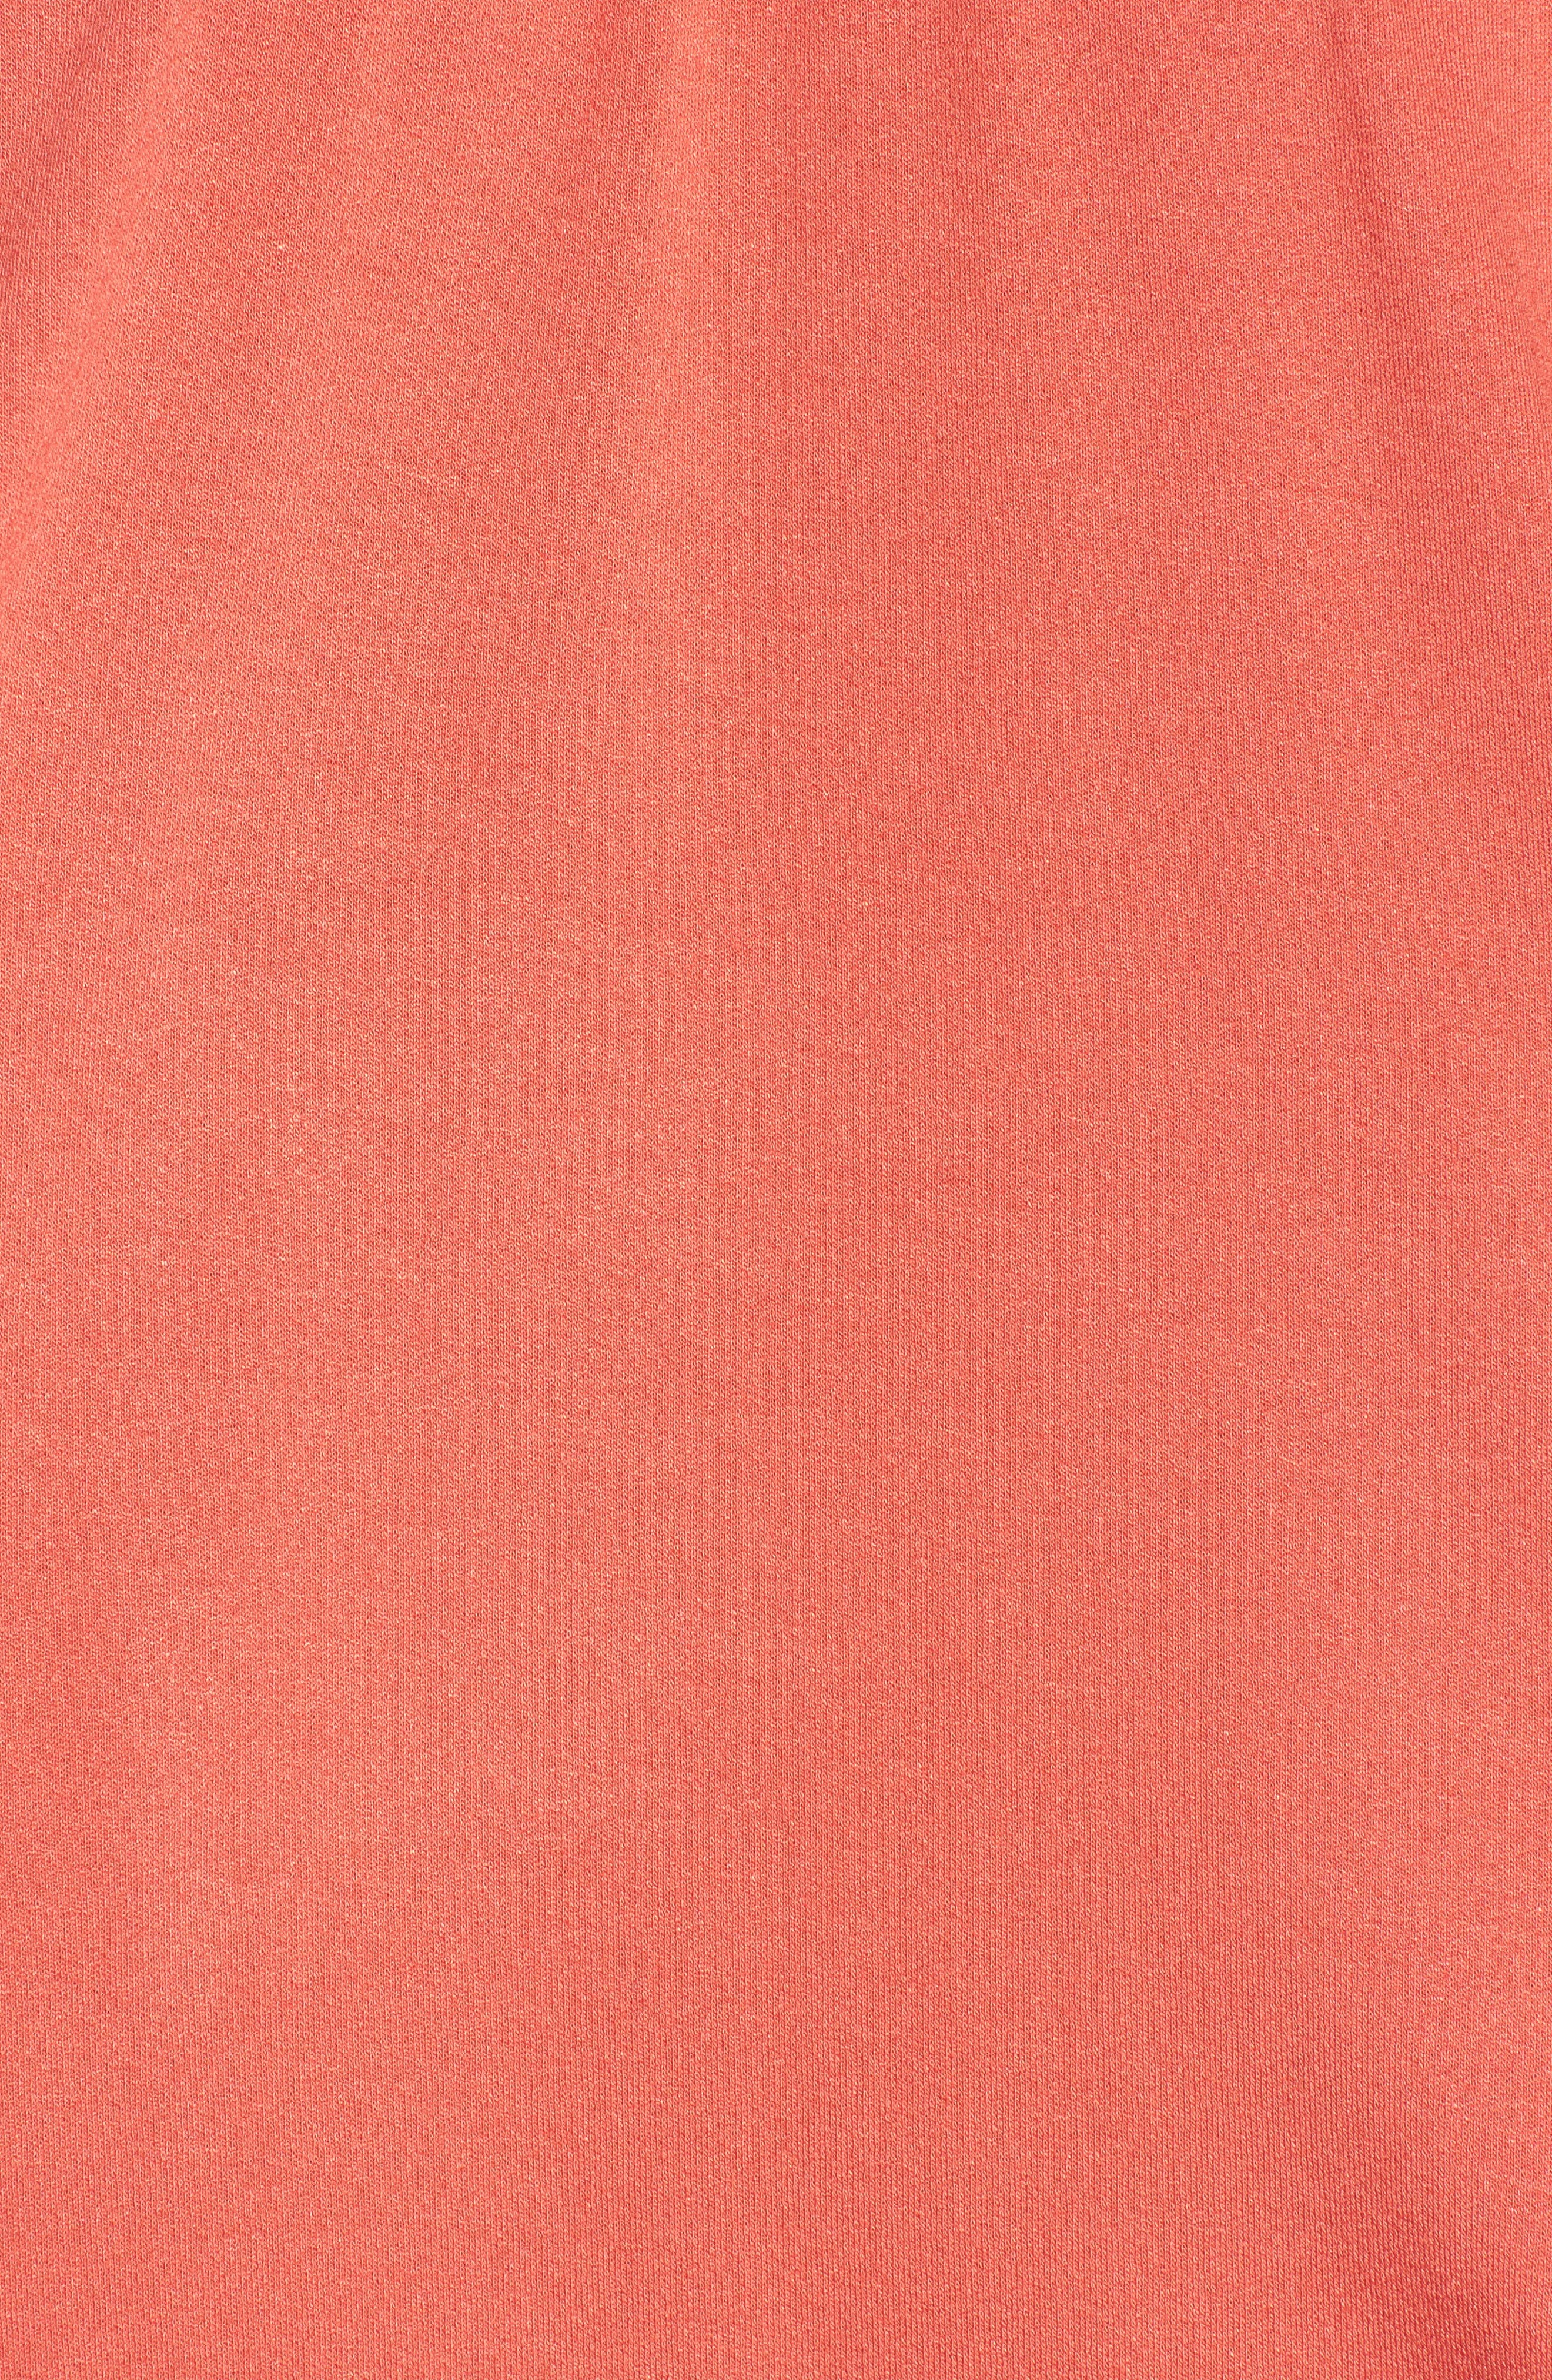 Off the Shoulder Top,                             Alternate thumbnail 5, color,                             Rust Sienna